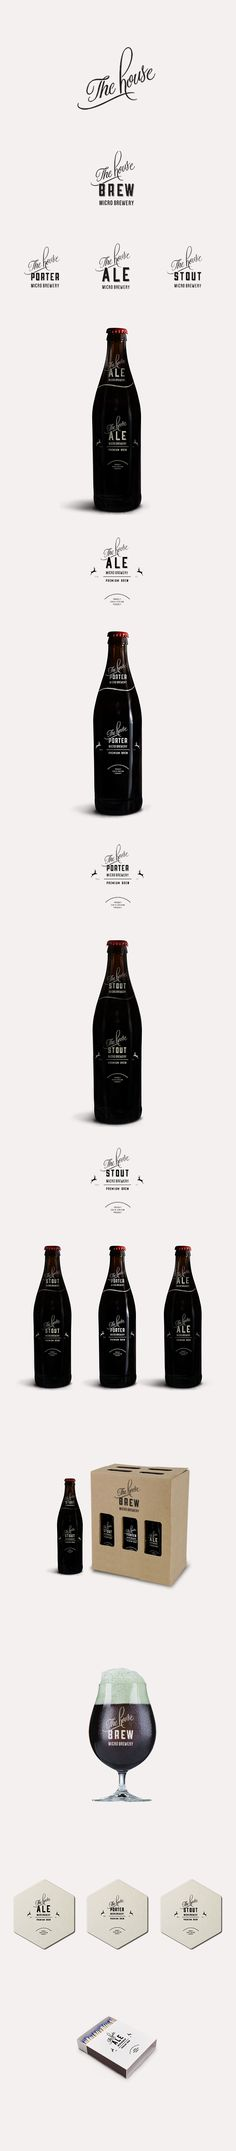 The House Brewery: CI & Packaging design by Louwrens Venter #mxm #beer